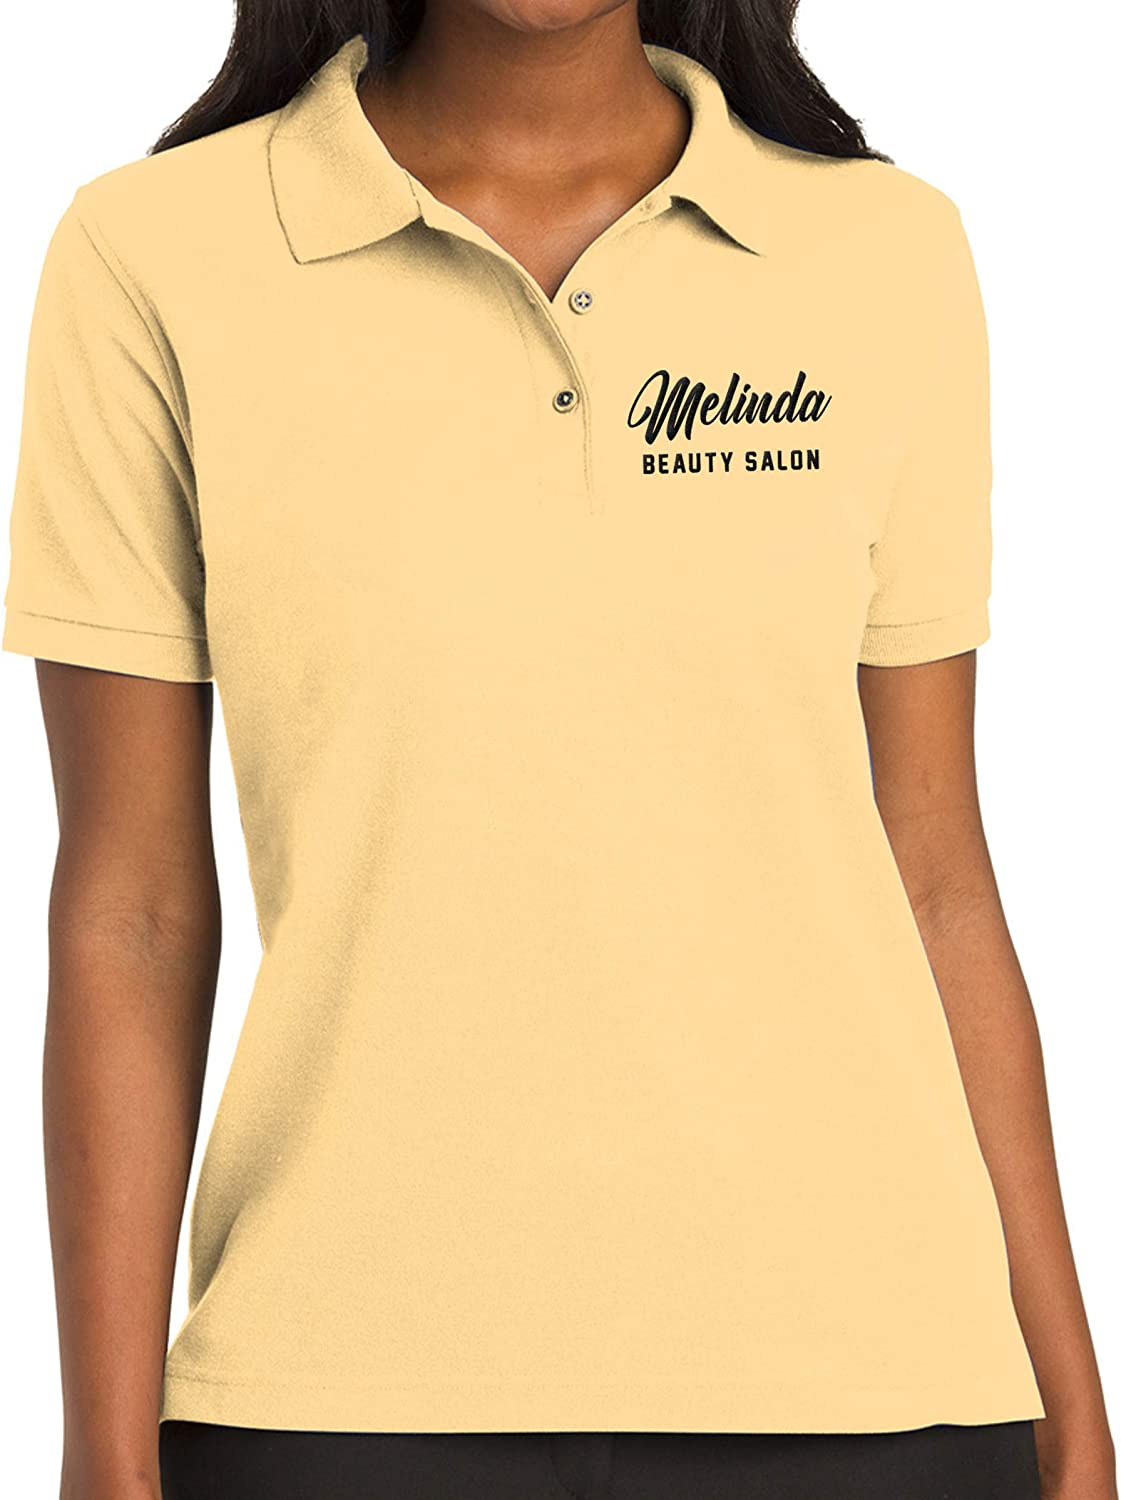 Custom Embroidered Polo Shirt for Women Add Your Personalized Own Embroidery Text